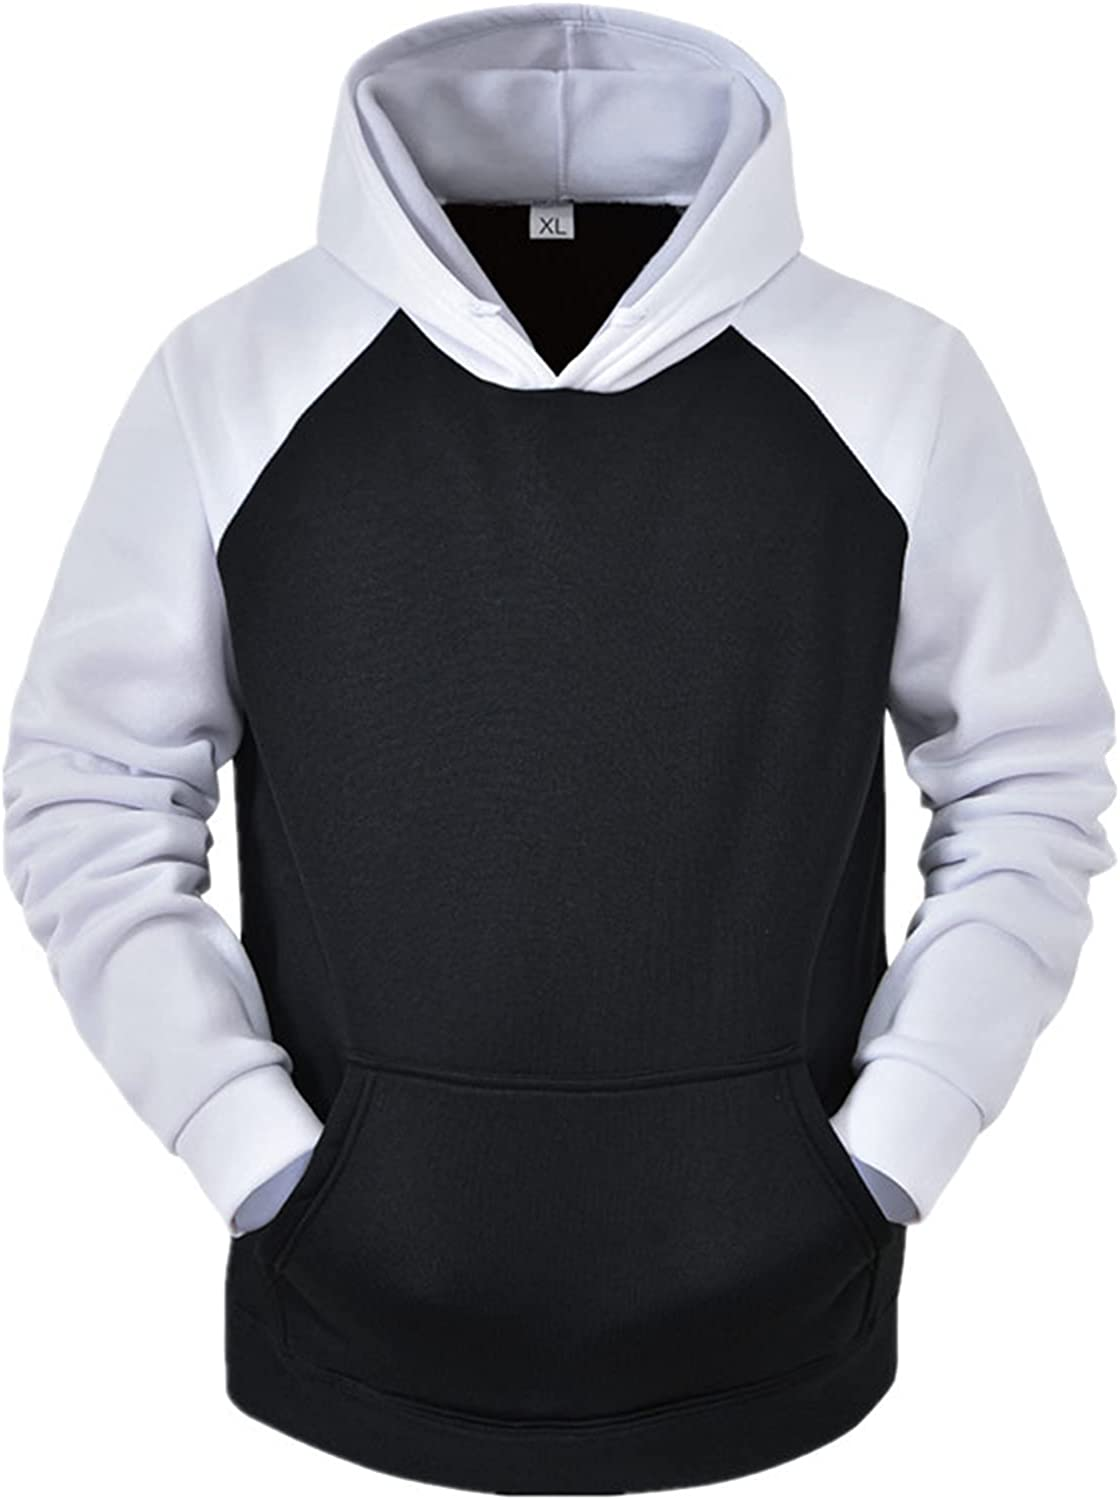 XXBR Fall Hoodies for Mens, Winter Solid Color Drawstring Hooded Sweatshirts Sports Workout Casual Pullover with Pockets